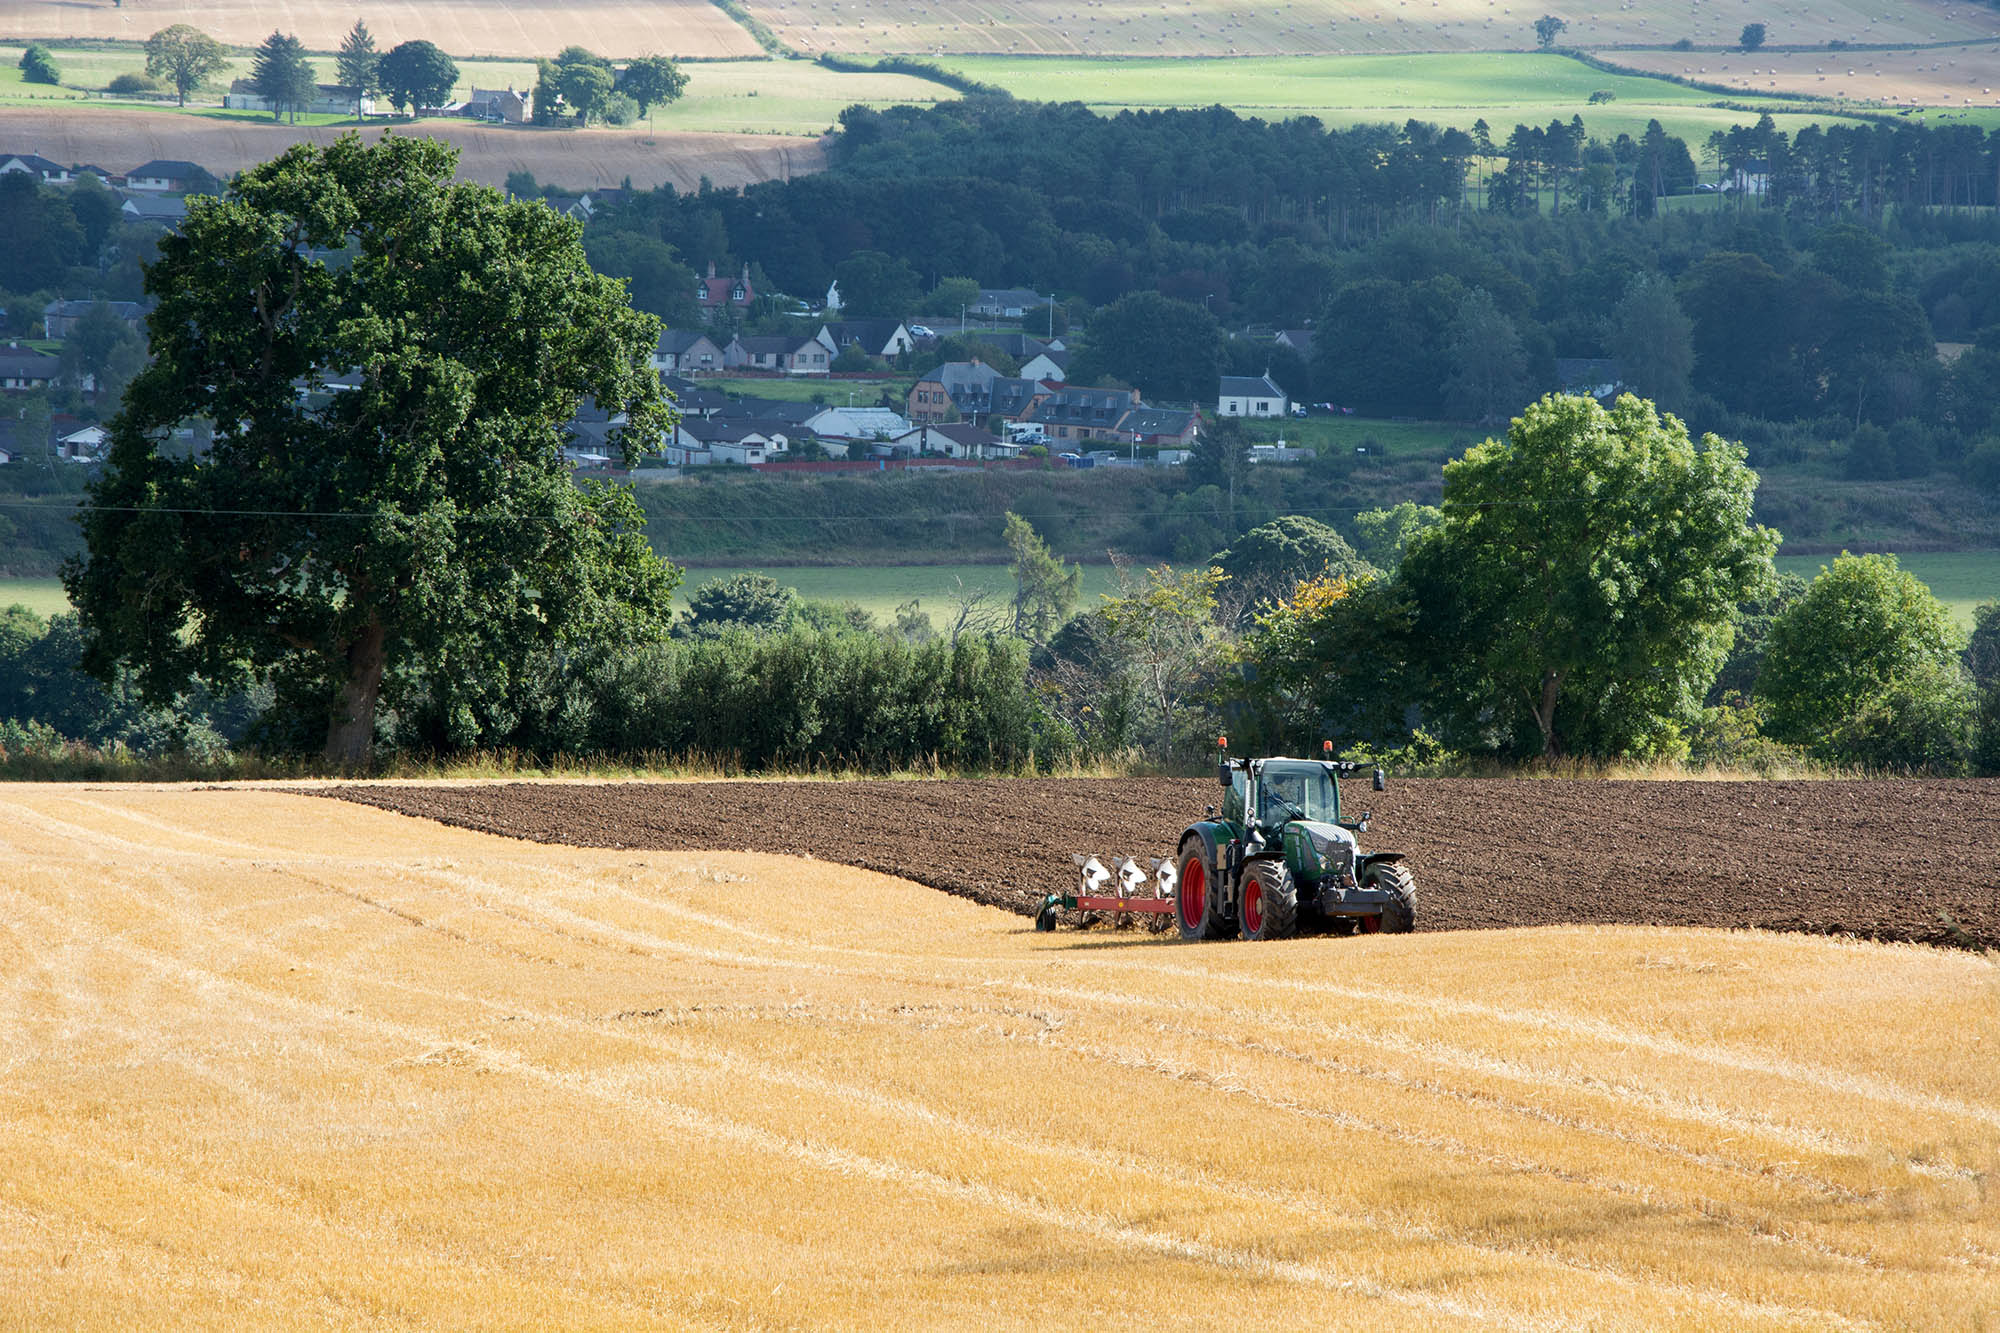 farm injury at work accident claims solicitors Aberdeen